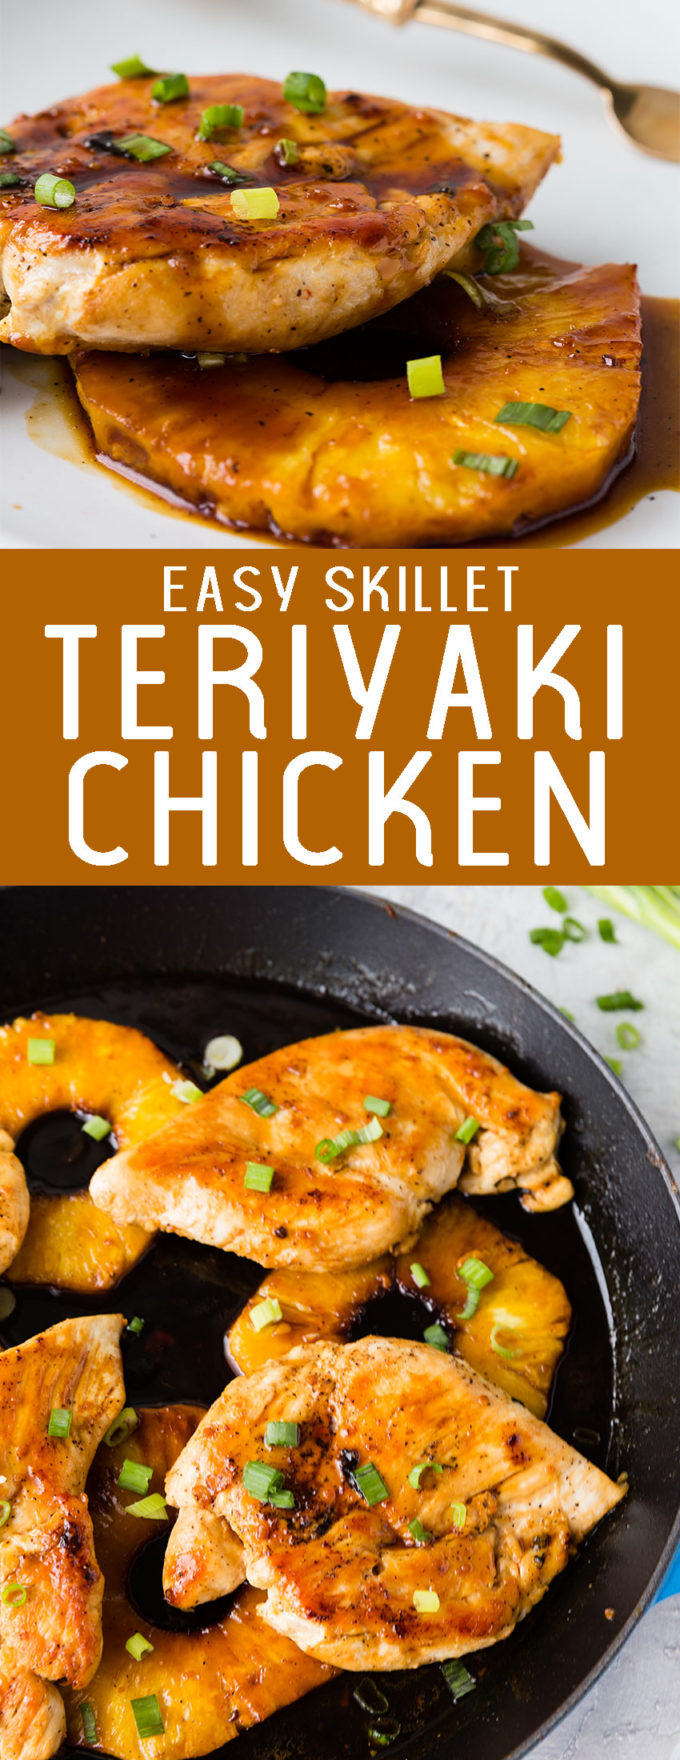 Easy skillet teriyaki chicken, the simplest meal with a homemade teriyaki sauce. So delicious